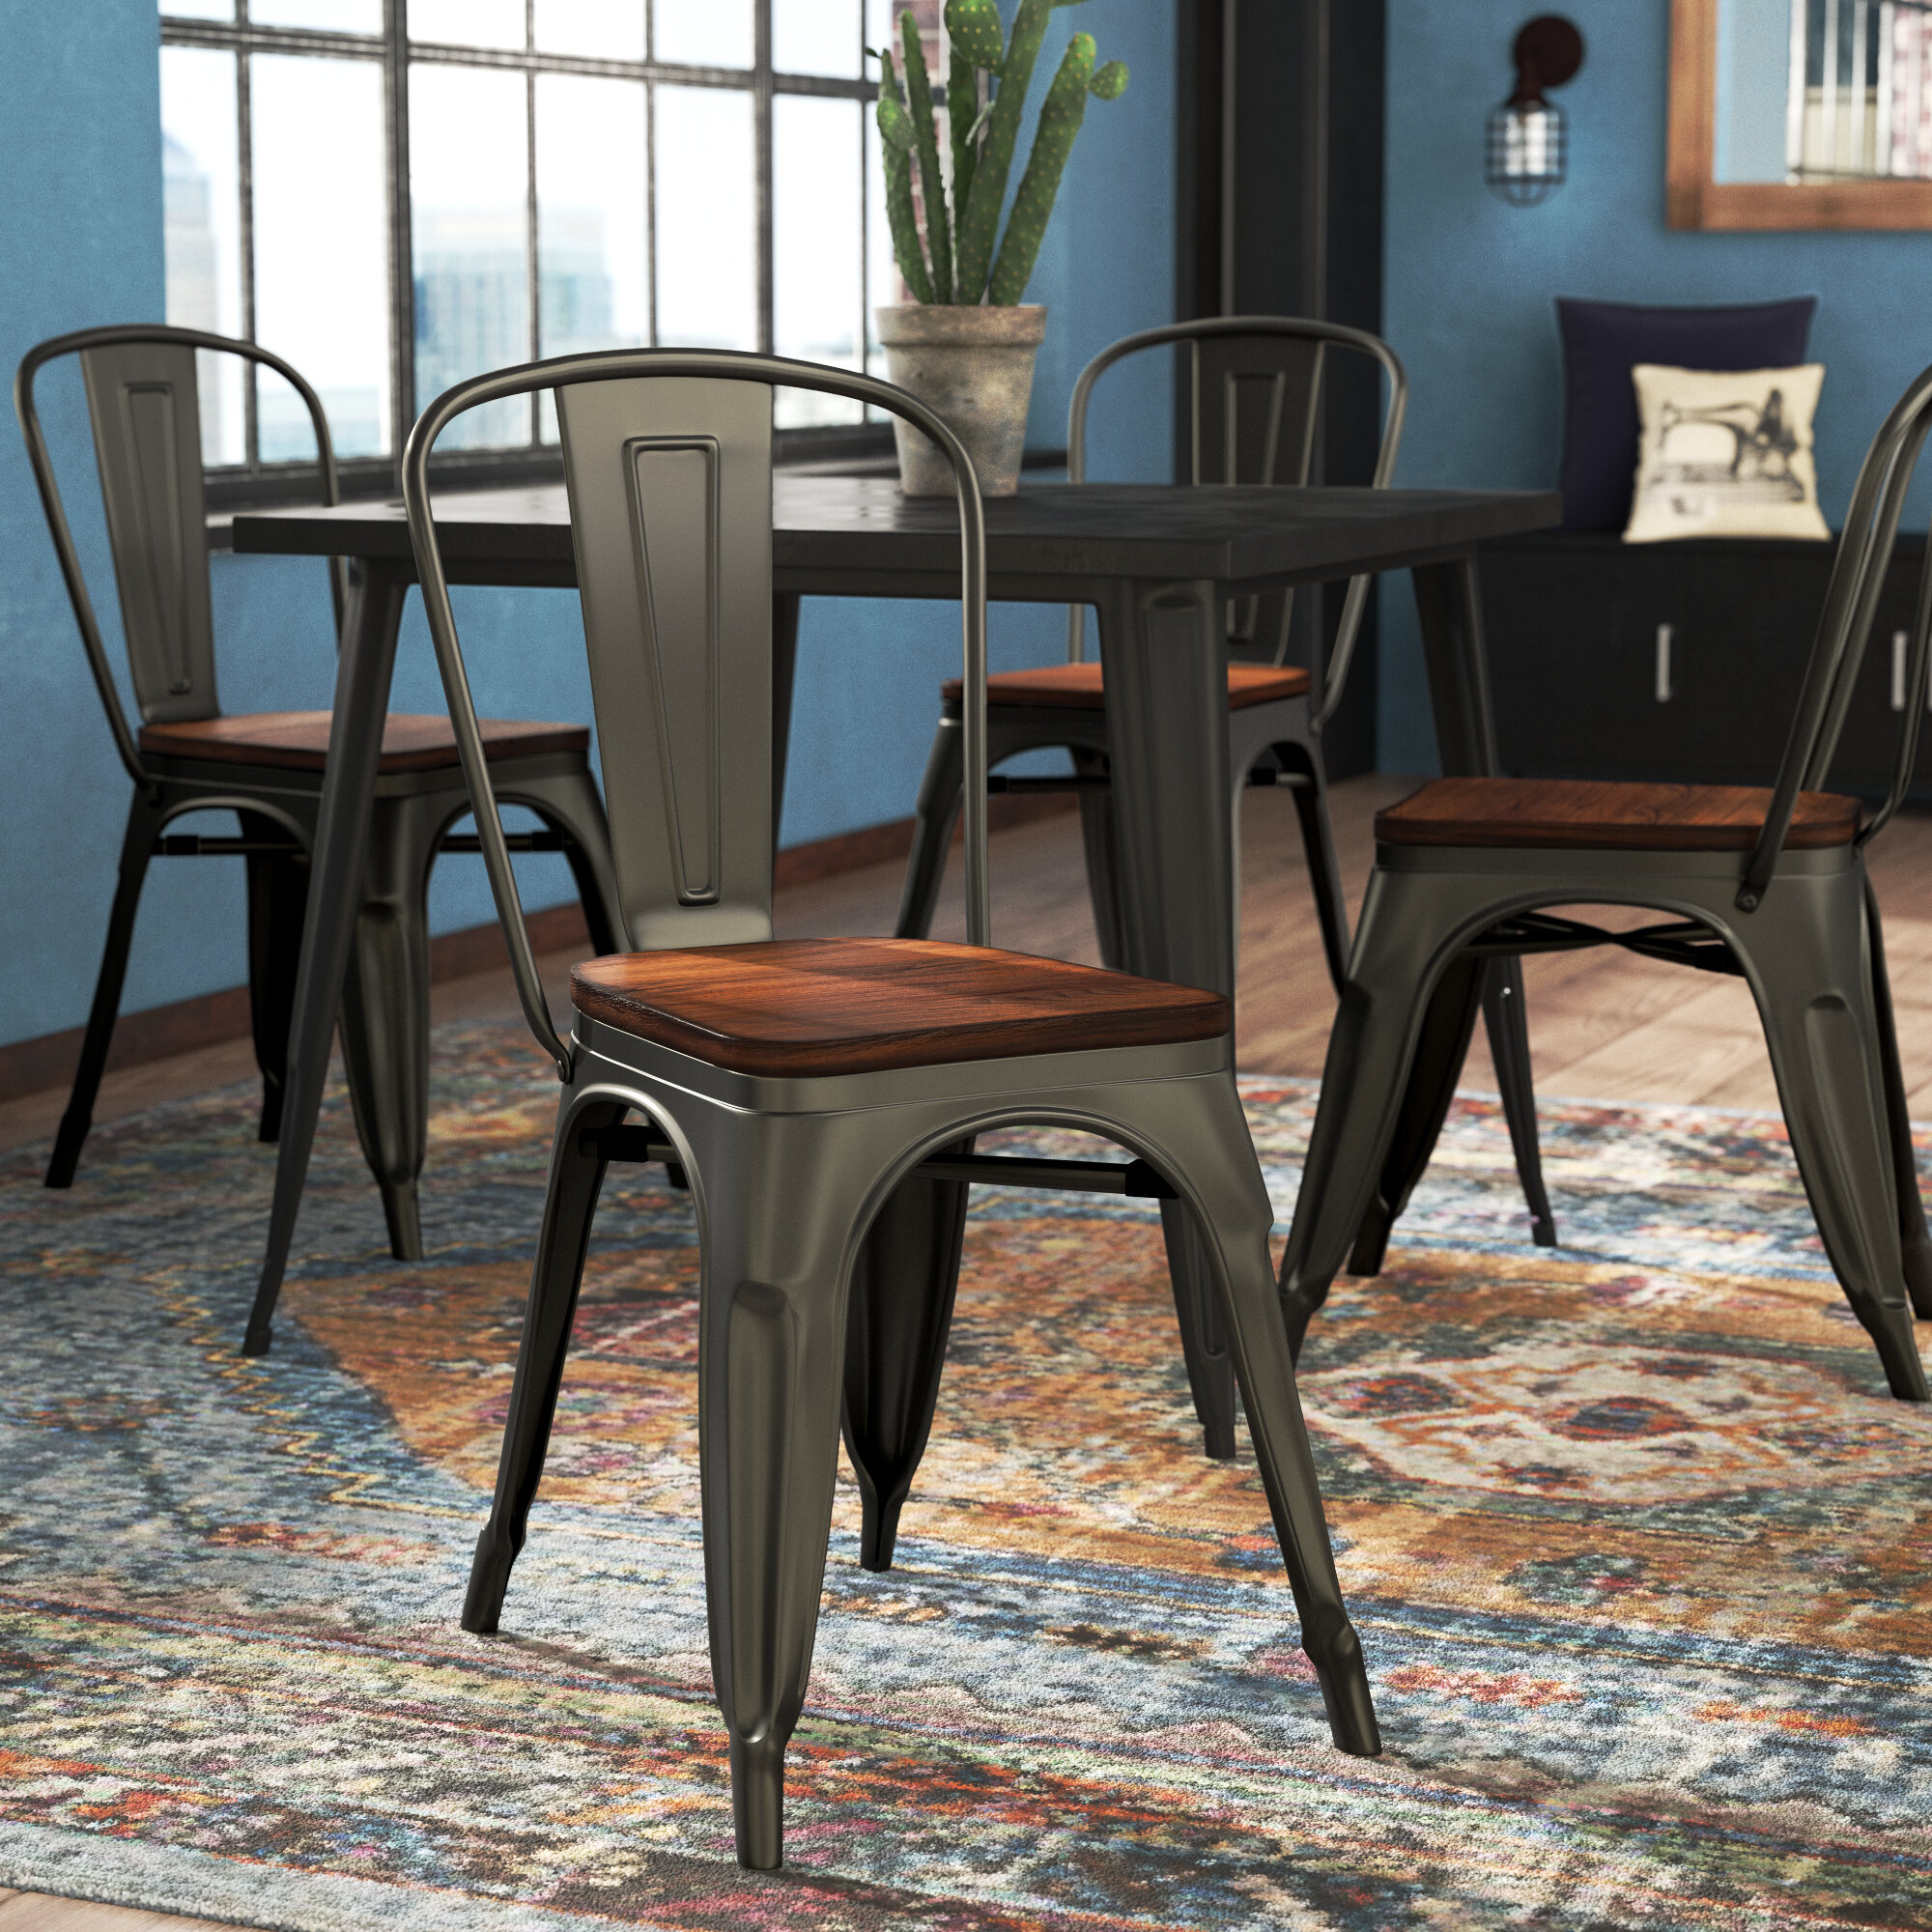 Williston Forge Mattox Slat Back Stacking Side Chair In Gray Reviews Wayfair